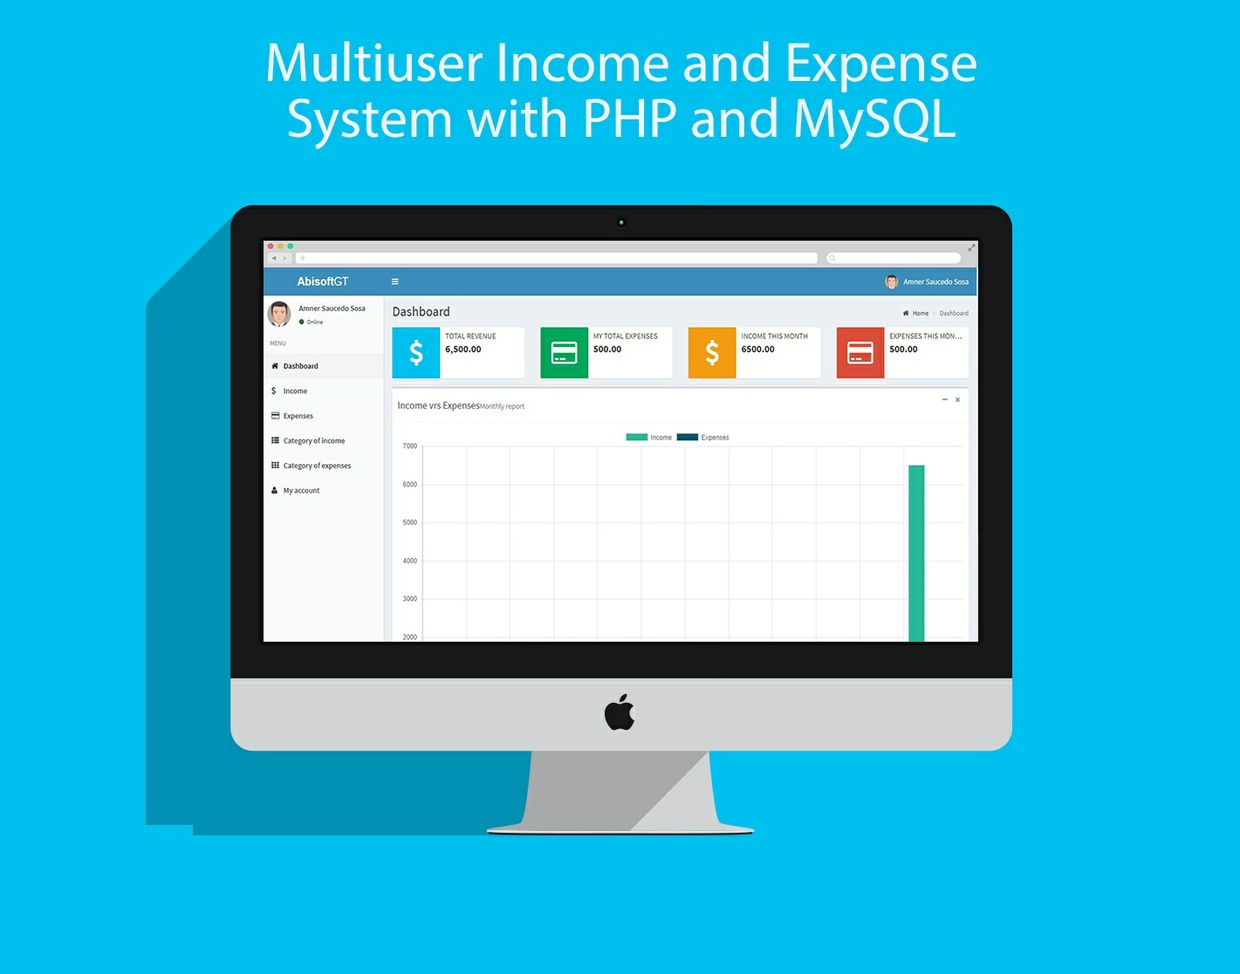 Multiuser Income and Expense System with PHP and MySQL